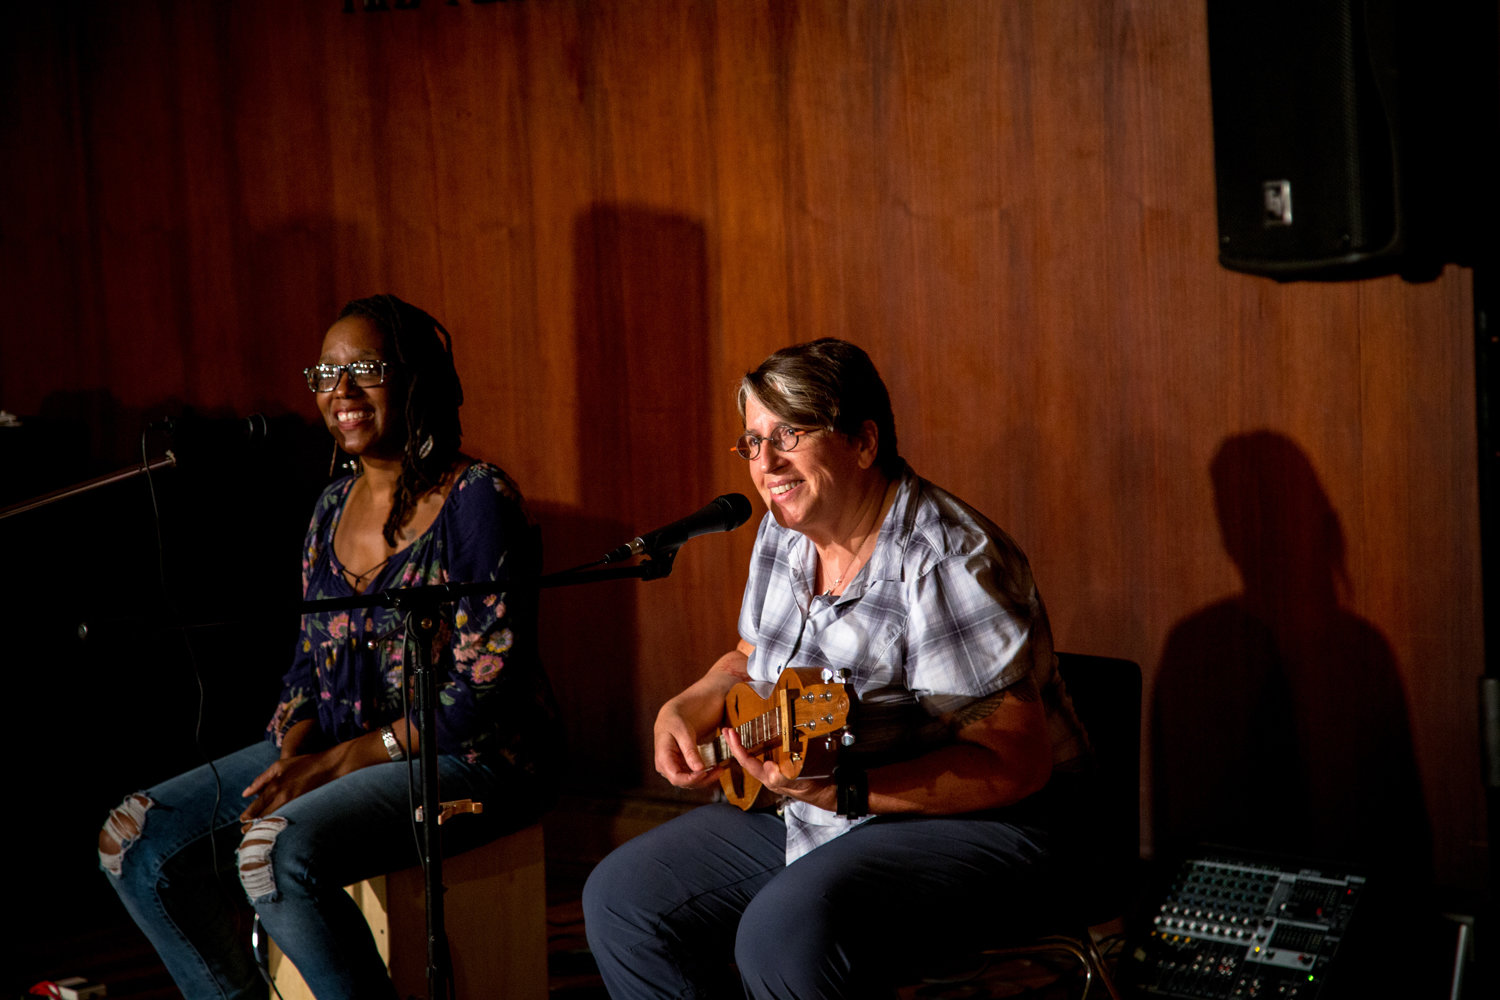 DK & the Joy Machine, right, plays folk music with Lindsey Wilson, left, during a Coffee House event at the Riverdale-Yonkers Society for Ethical Culture in 2018. Live performances can no longer be found at the society as a consequence of the coronavirus pandemic.